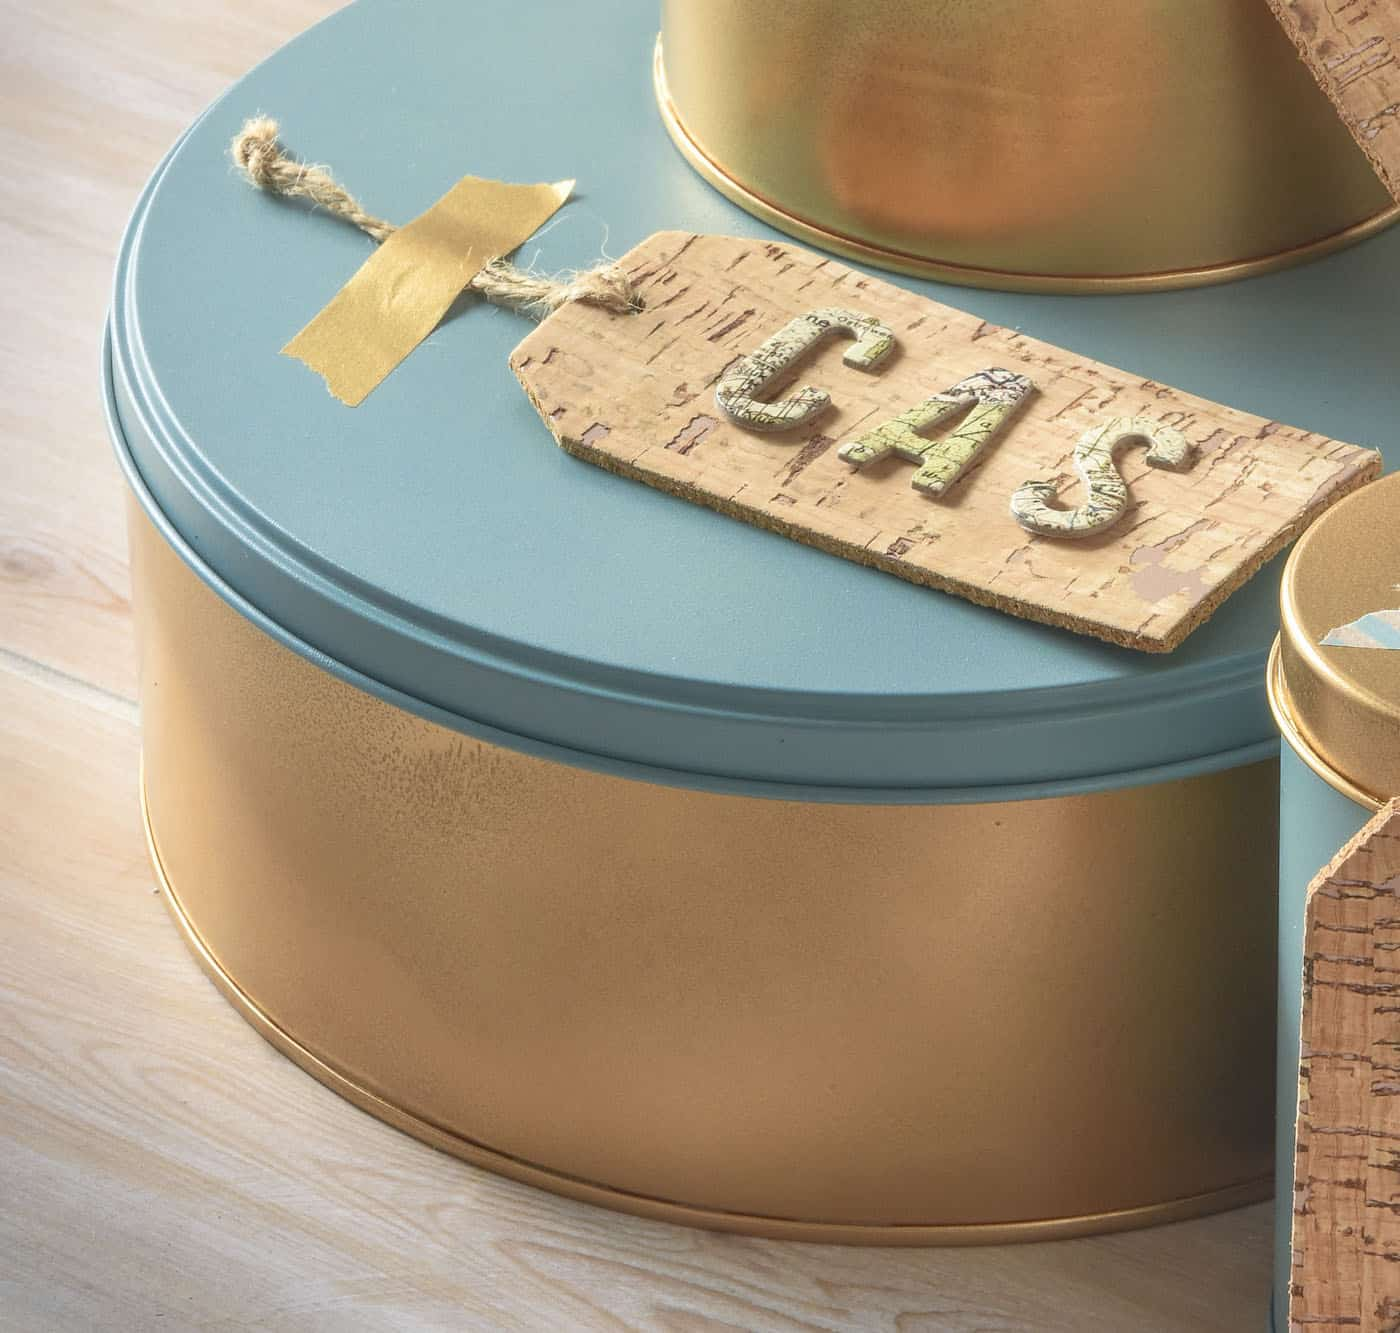 Use spray paint to revive and upcycle old Christmas tins! Add cork tags and adhesive letters to use them for gift containers or storage. So easy!